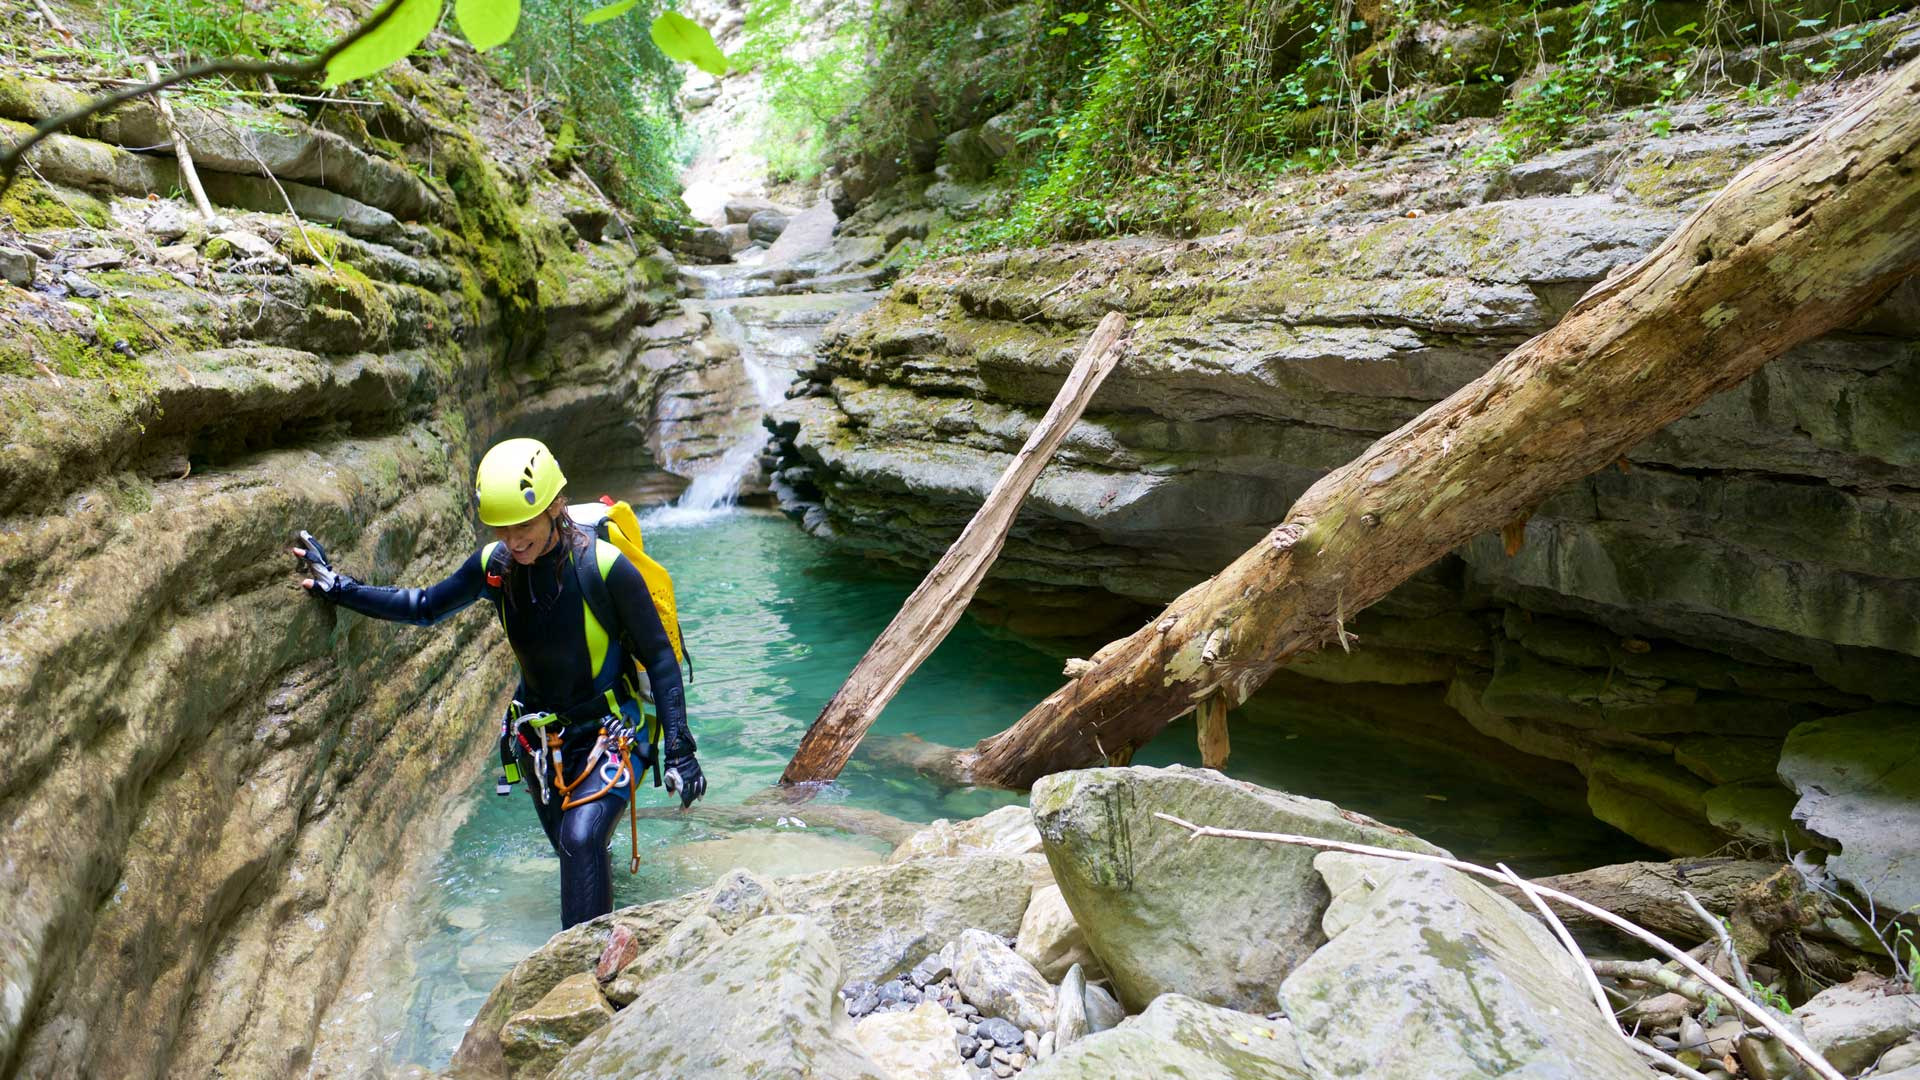 Canyoning sulle Dolomiti, Active & Family Hotel Castel Pietra